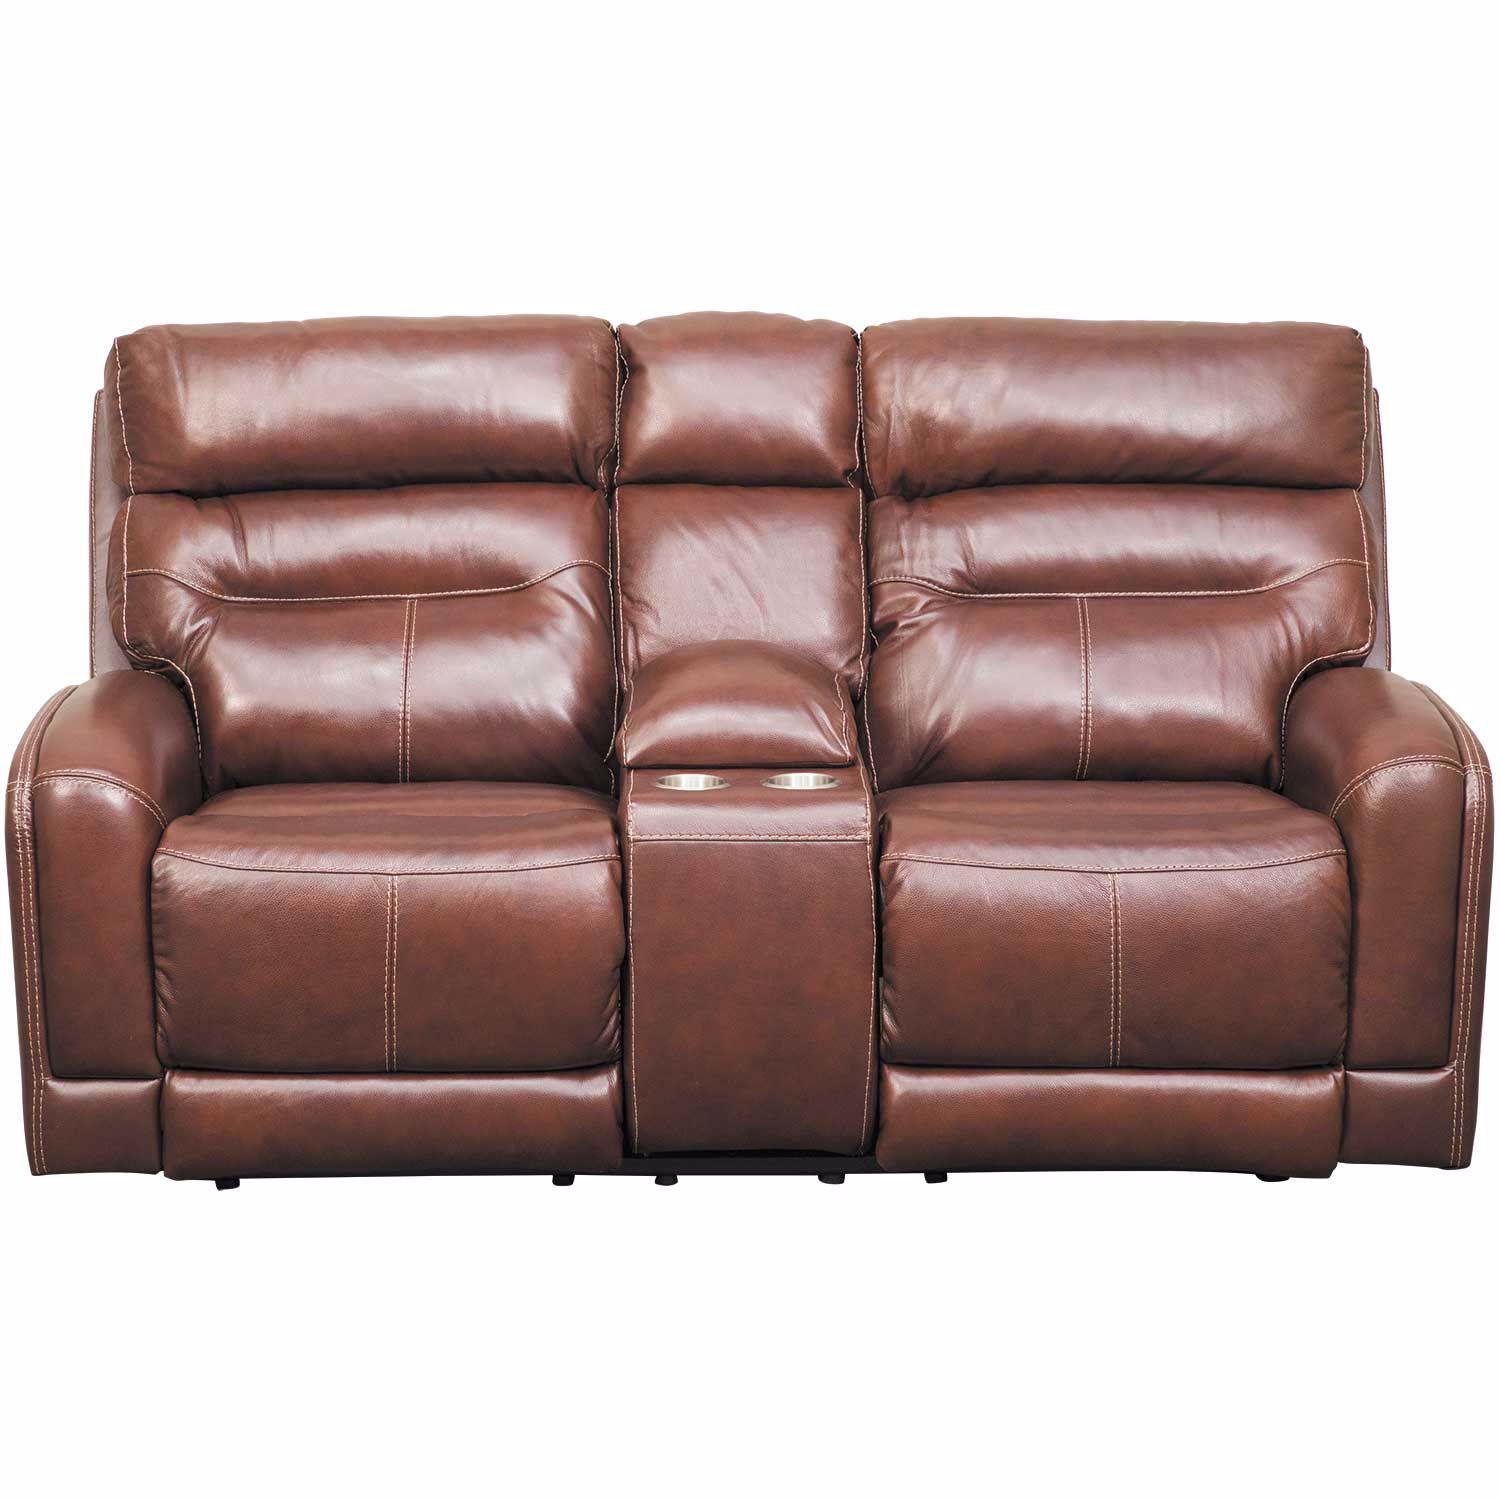 Superb Sessom Leather Power Reclining Console Loveseat With Adjustable Headrest And Lumbar Machost Co Dining Chair Design Ideas Machostcouk